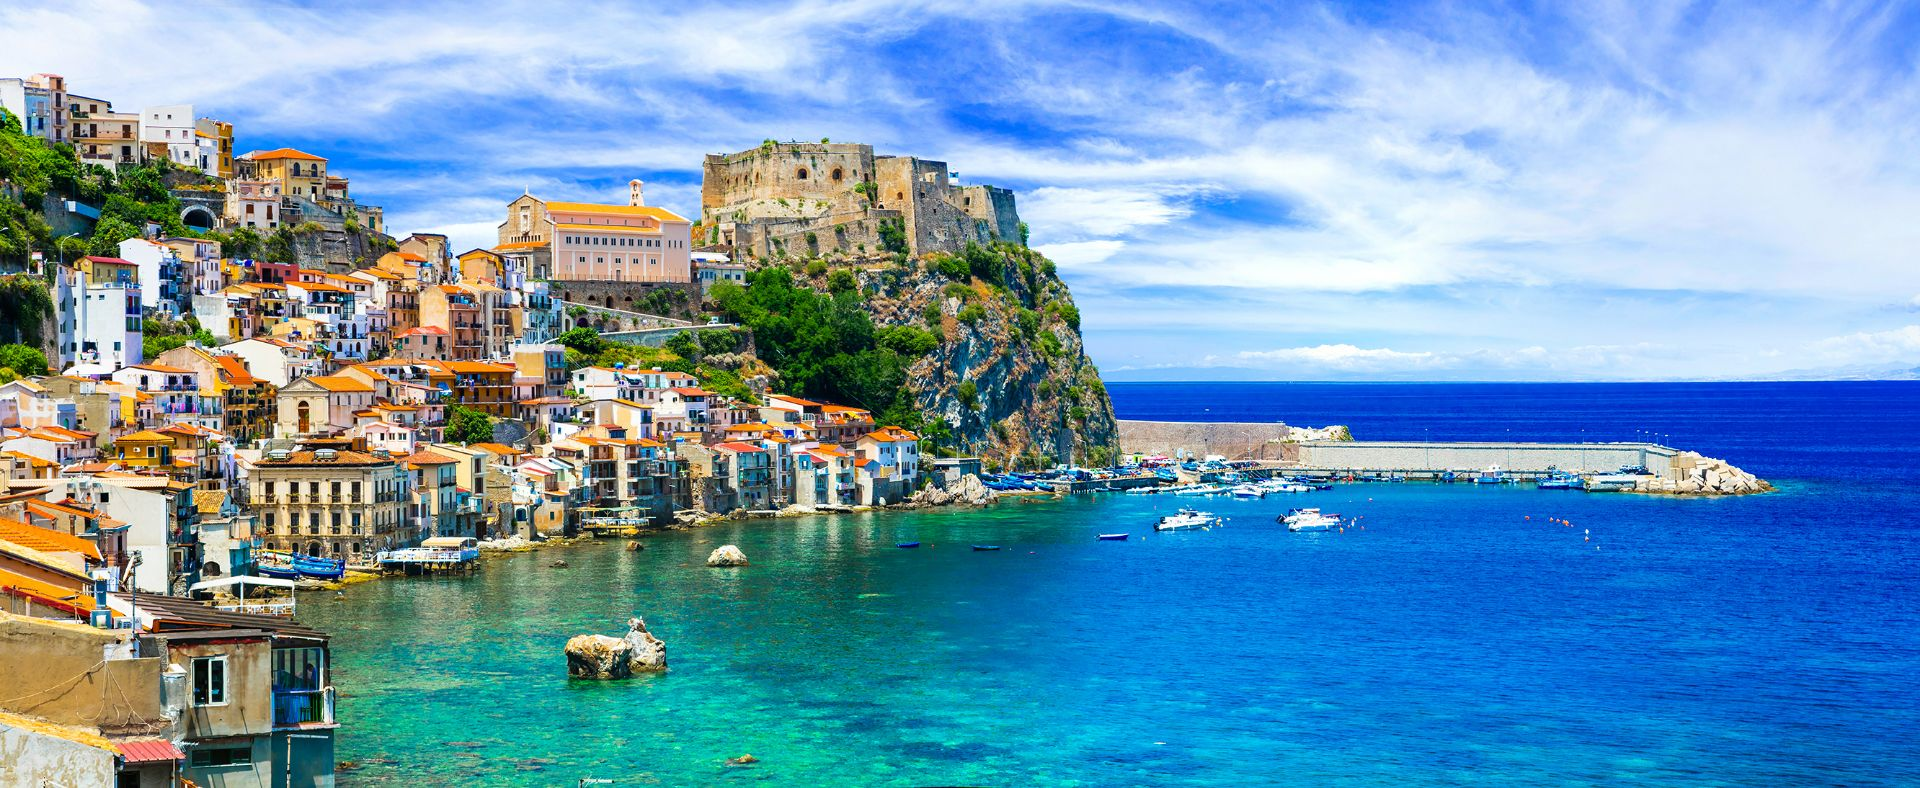 5 reasons why Calabria should be on your holiday wish list